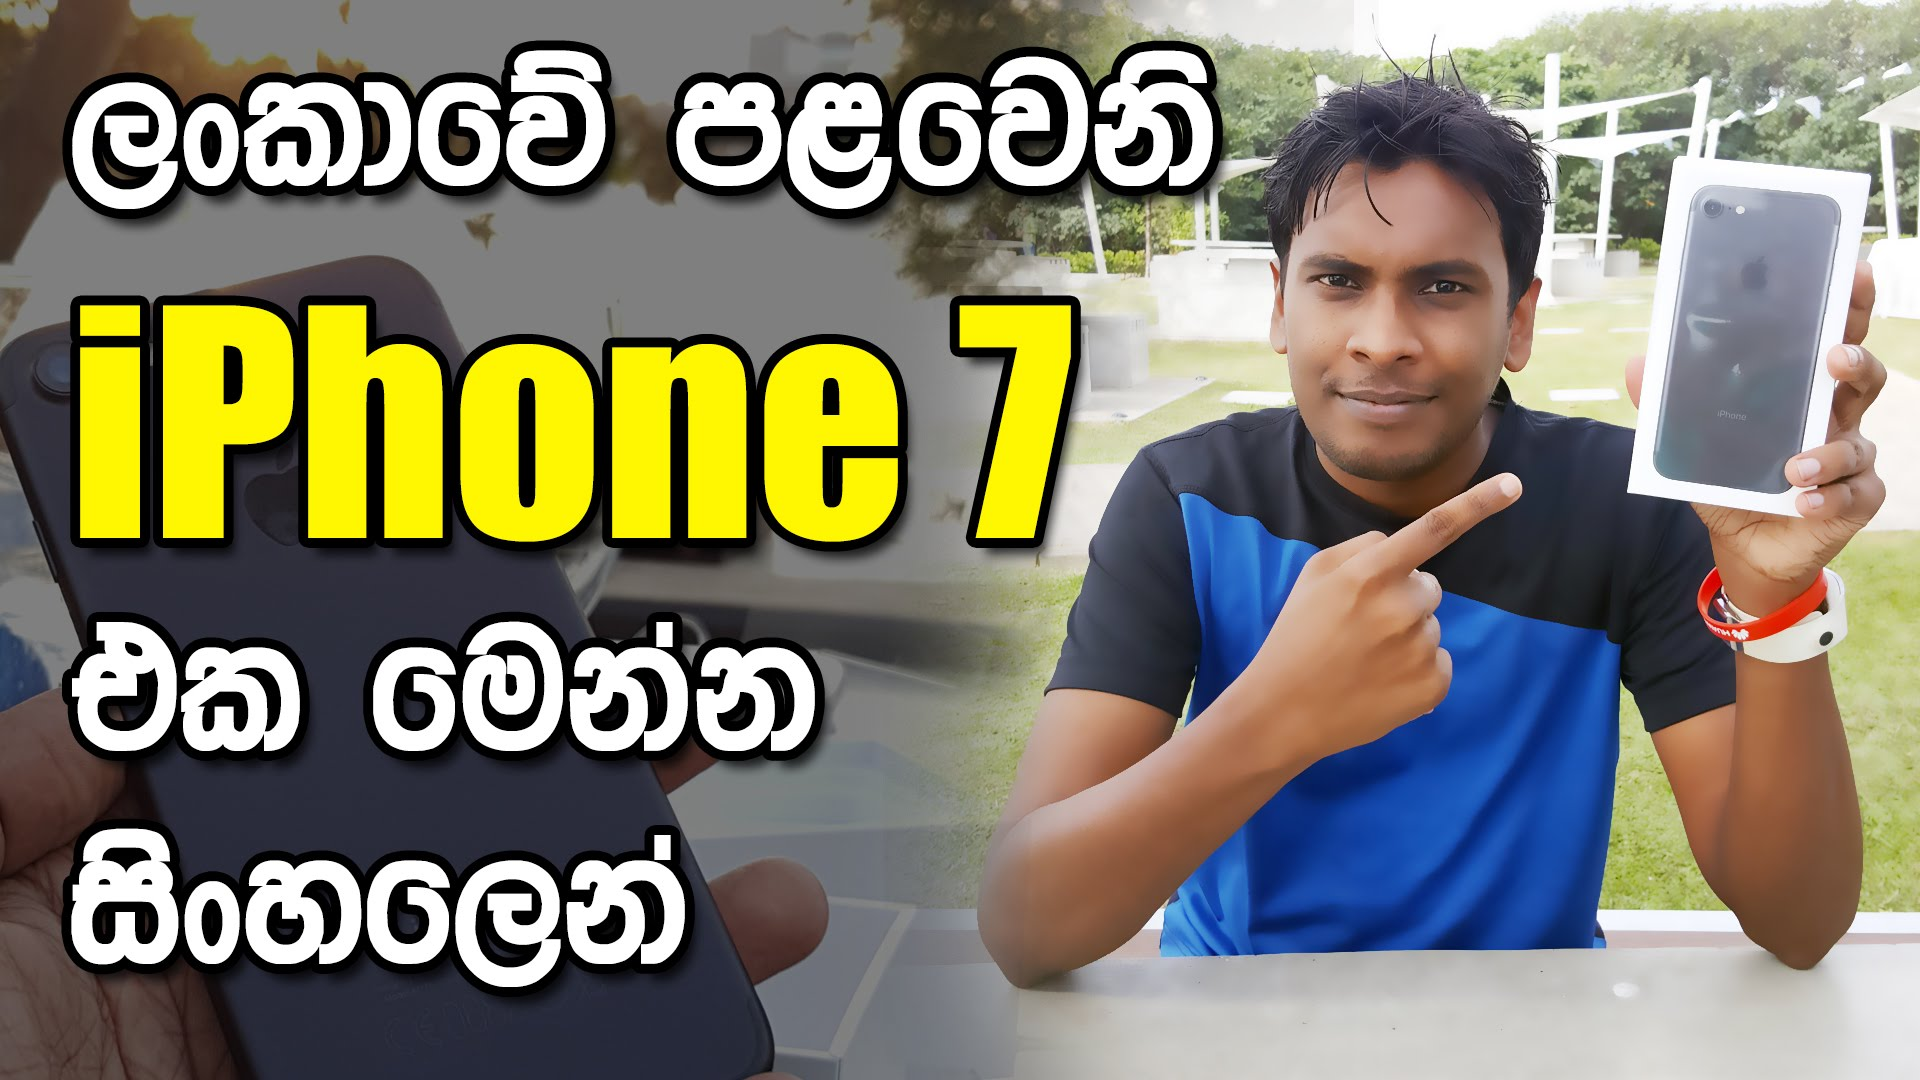 Apple iPhone 7 ගැන Sinhala Video 2 ක්